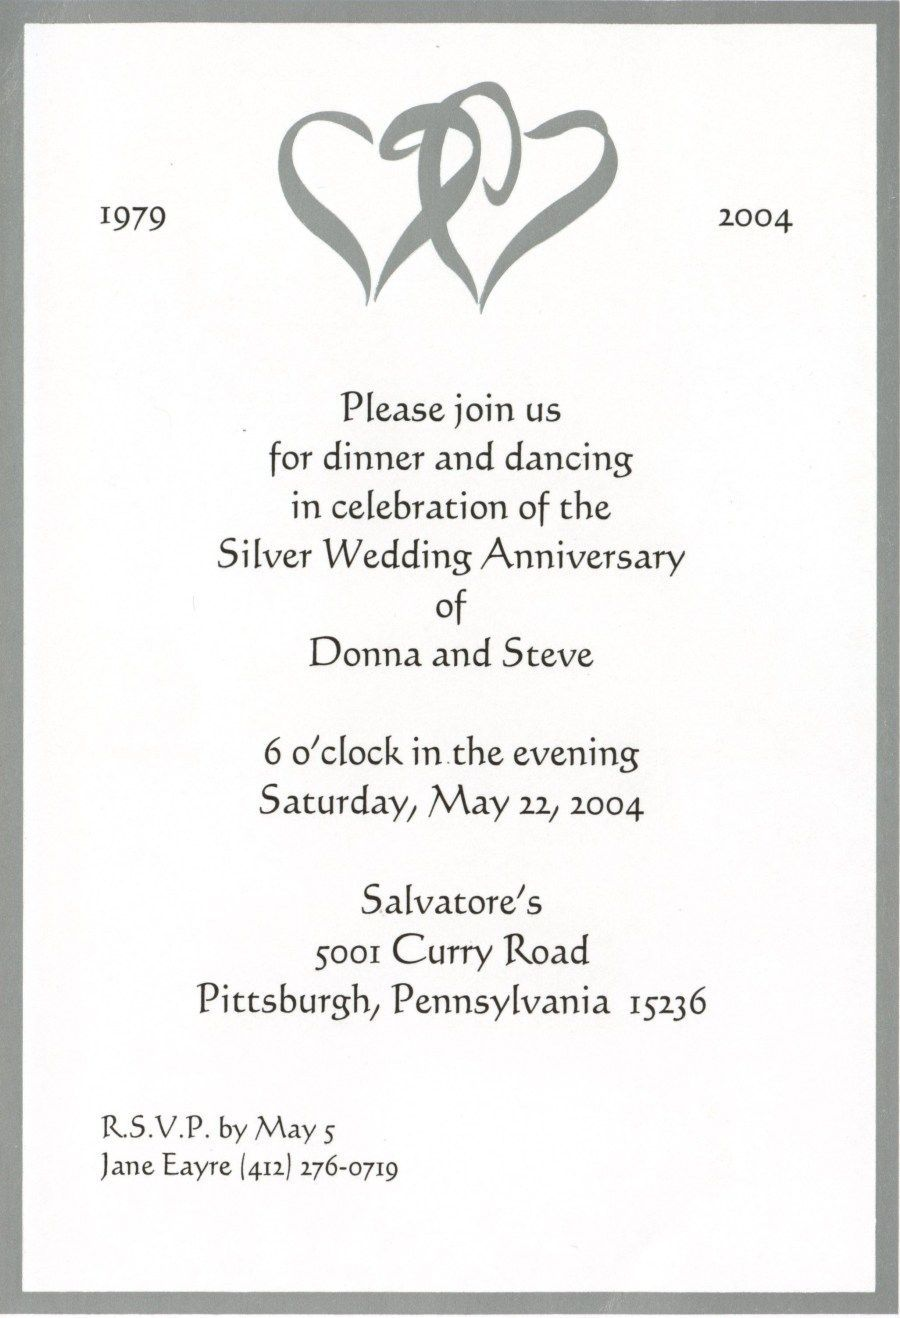 005 Fearsome 50th Anniversary Invitation Wording Sample Concept  Samples Wedding CardFull